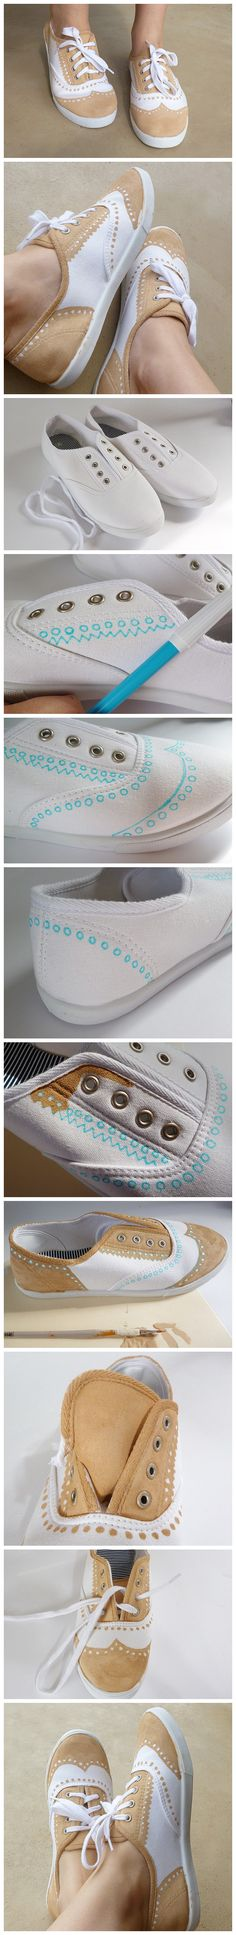 genius. diy sneaker oxfords